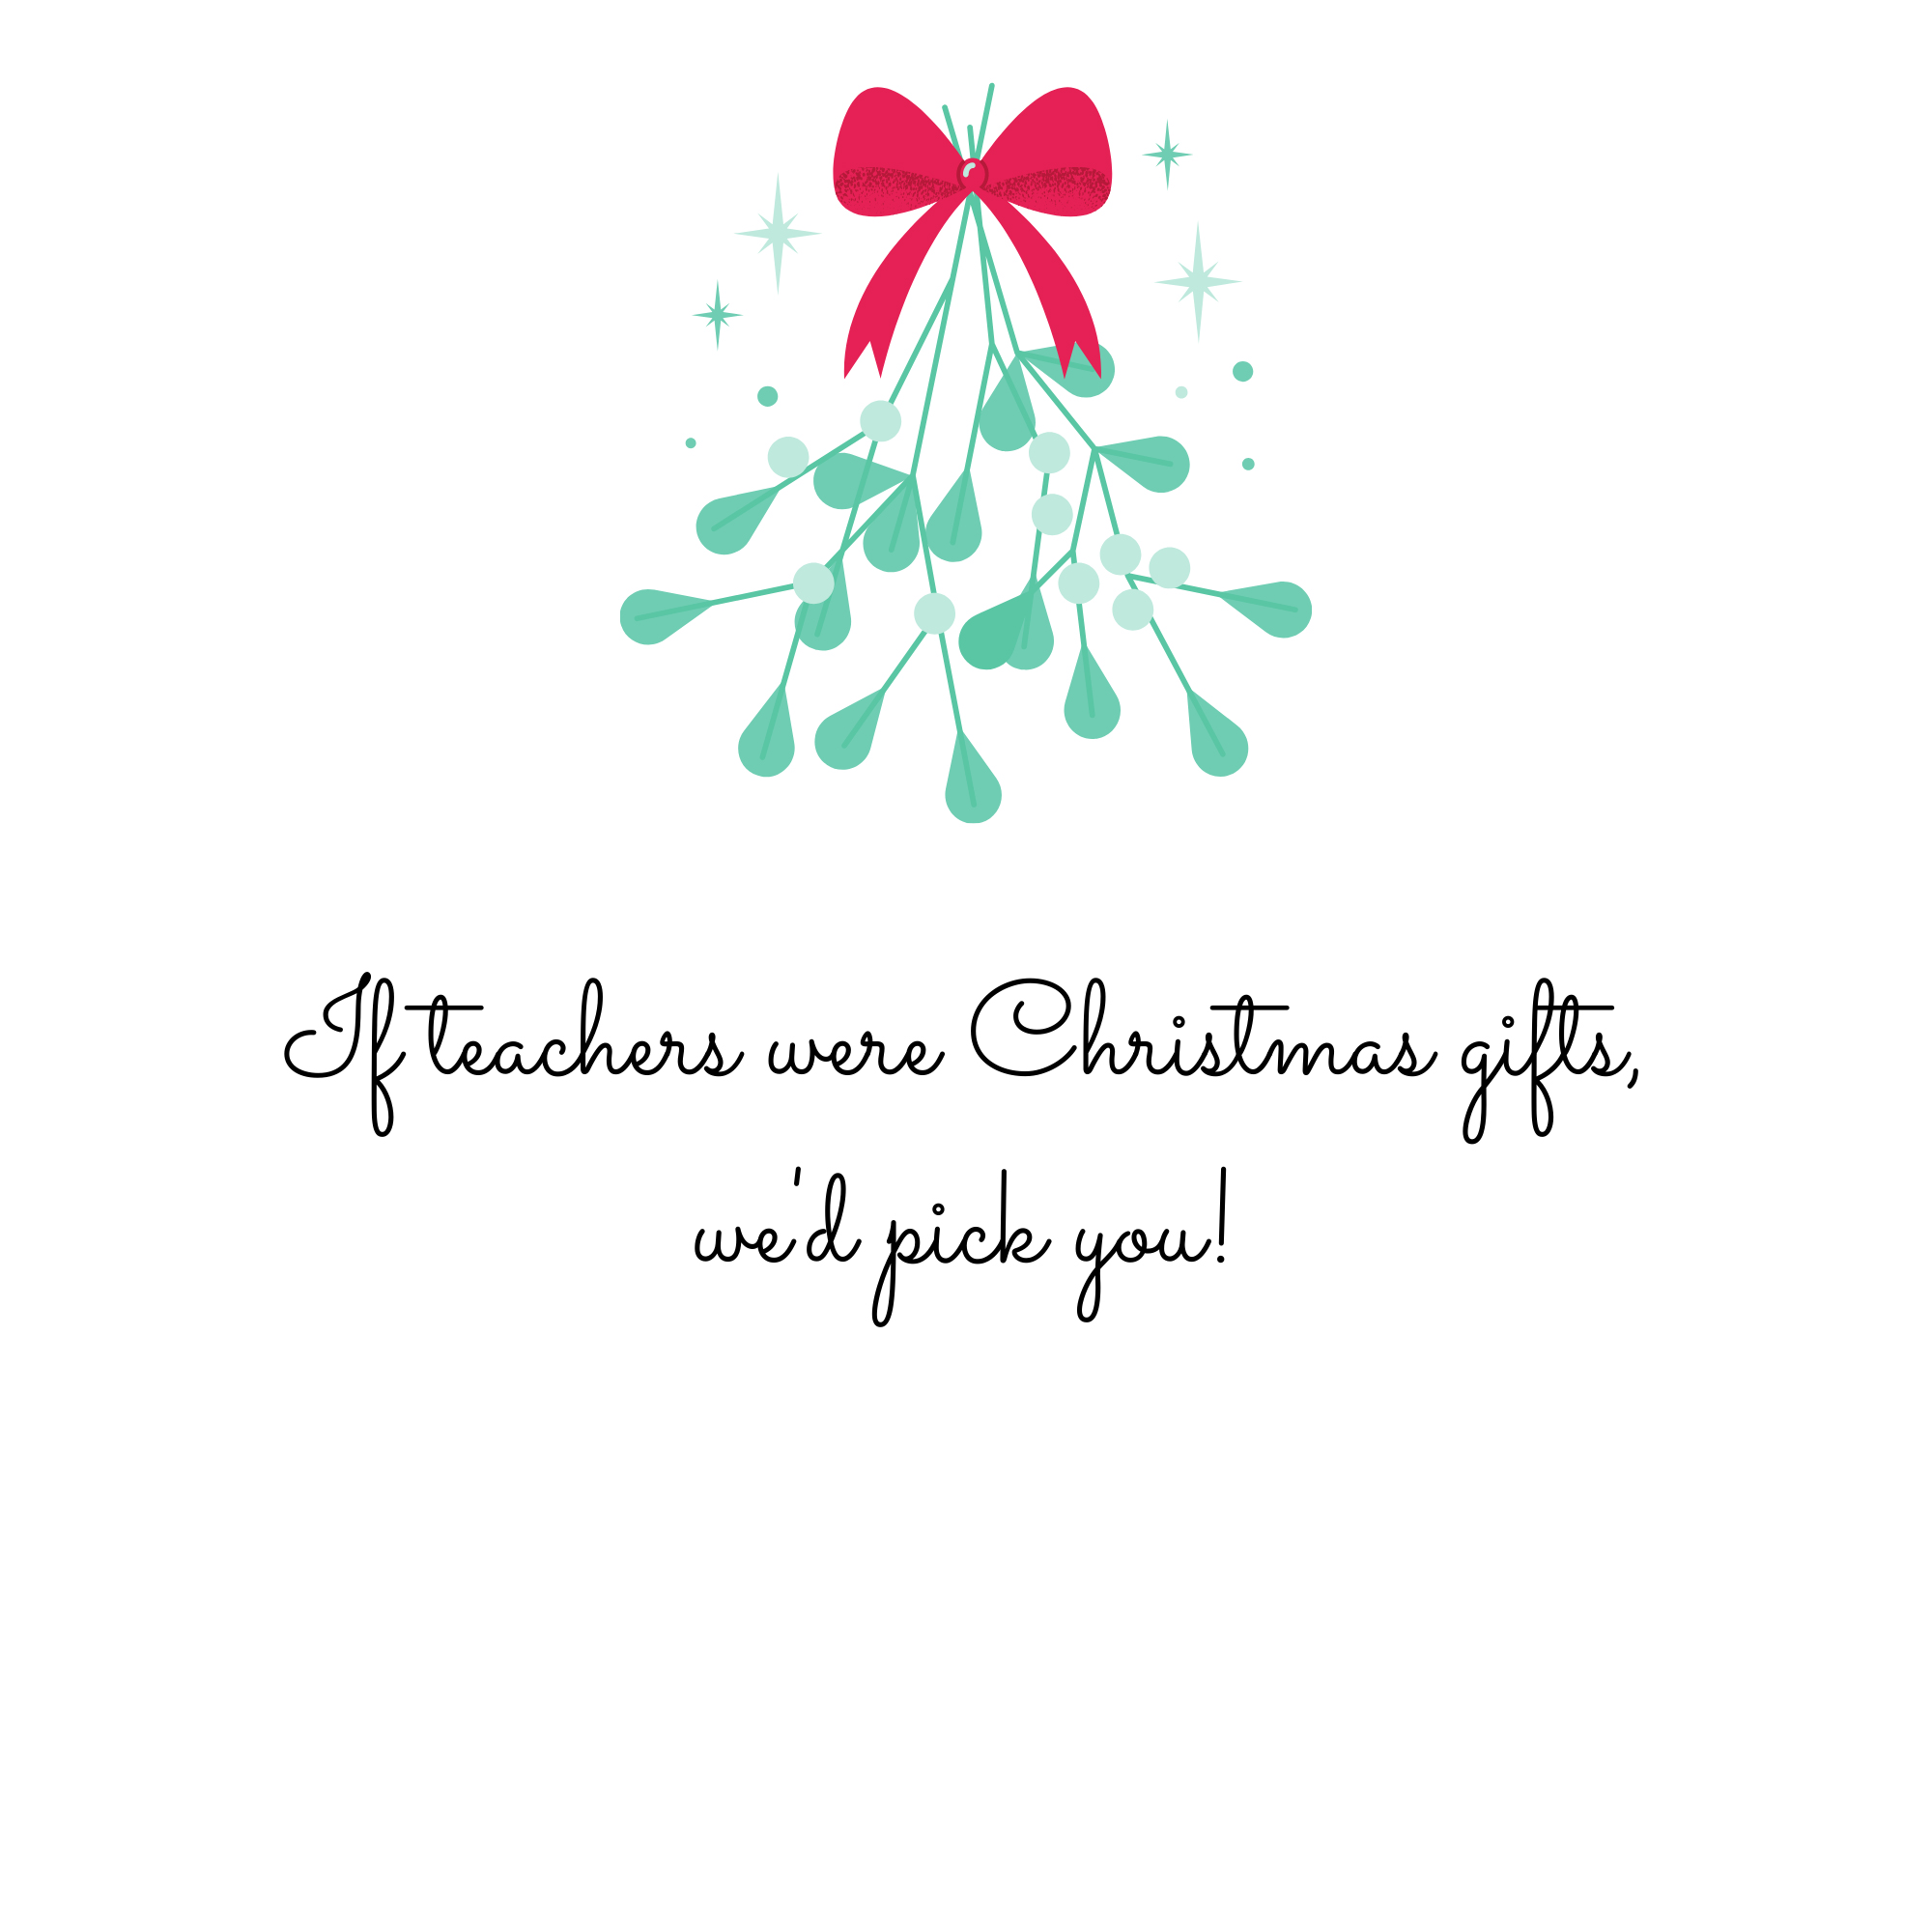 If teachers were Christmas gifts, we'd pick you!